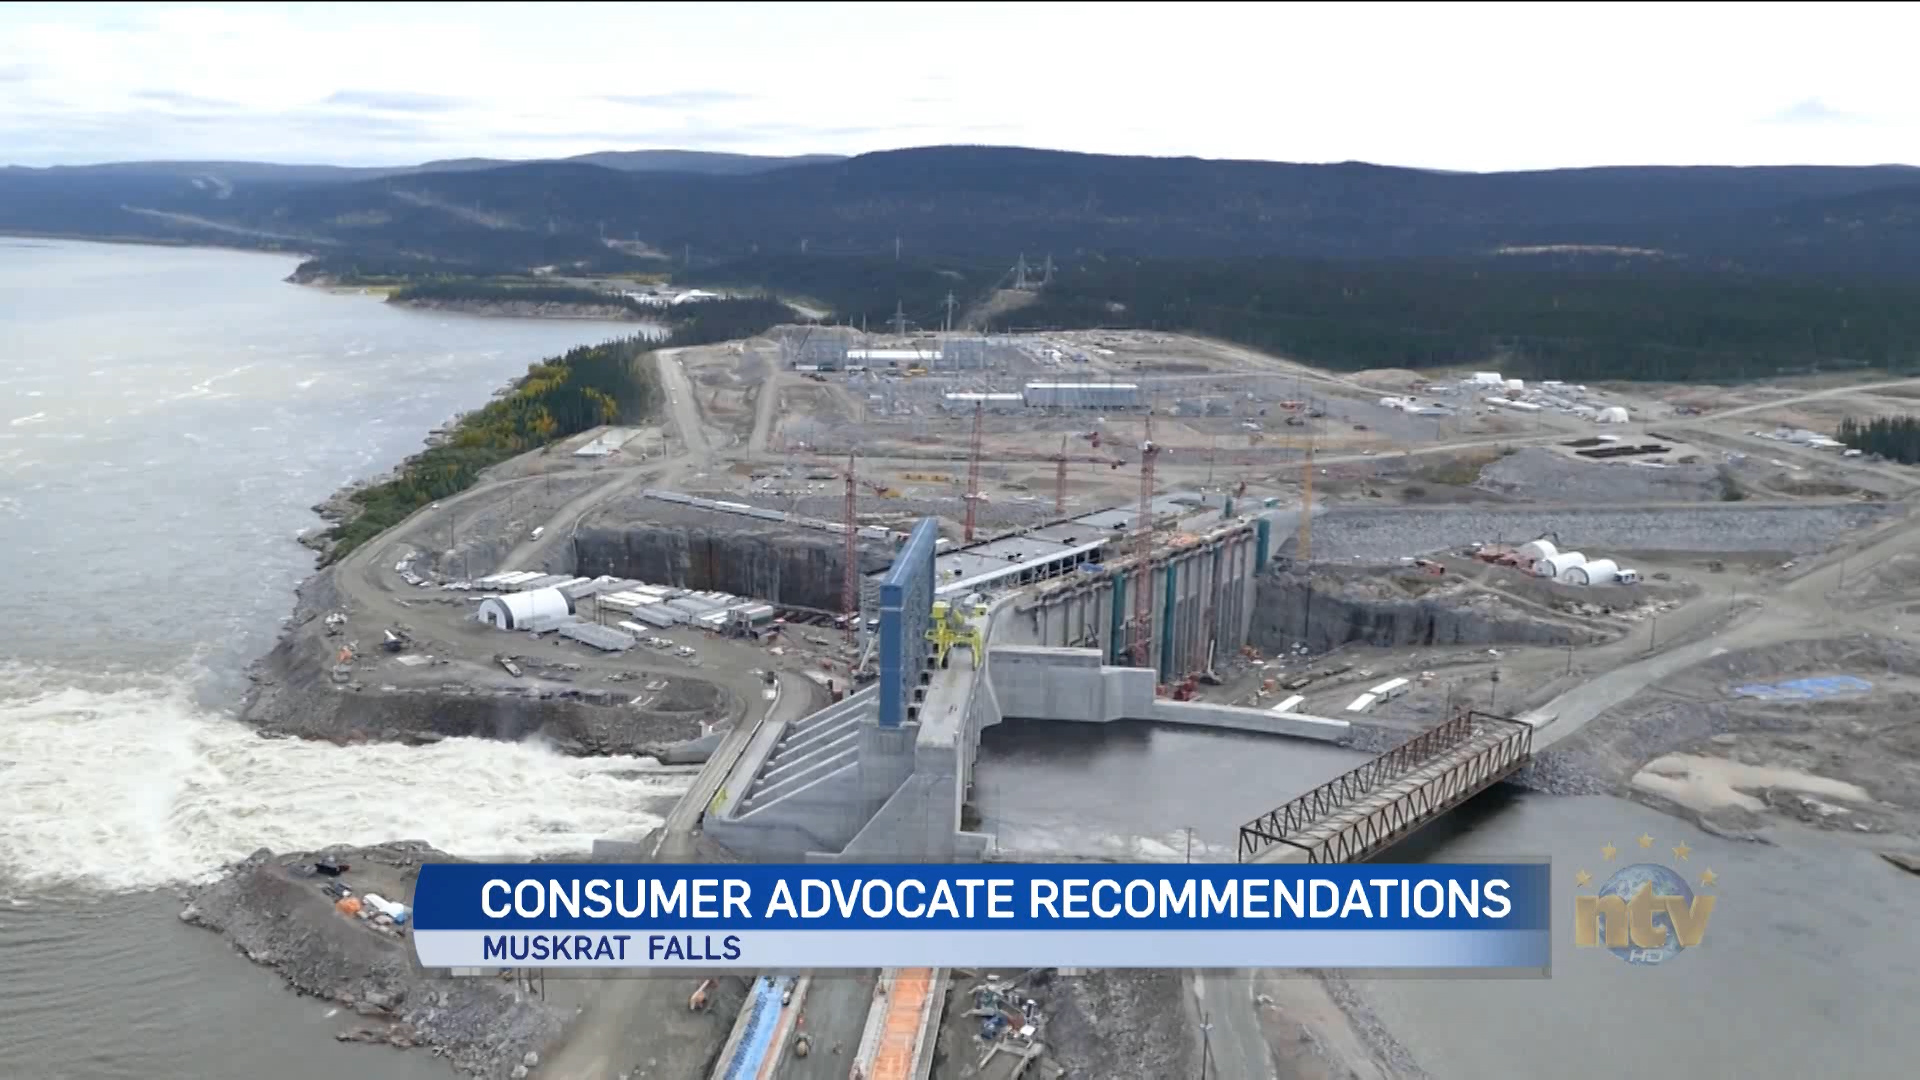 Consumer advocate calls for changes to avoid repeat of 'fatal' Muskrat Falls mistakes - ntv.ca